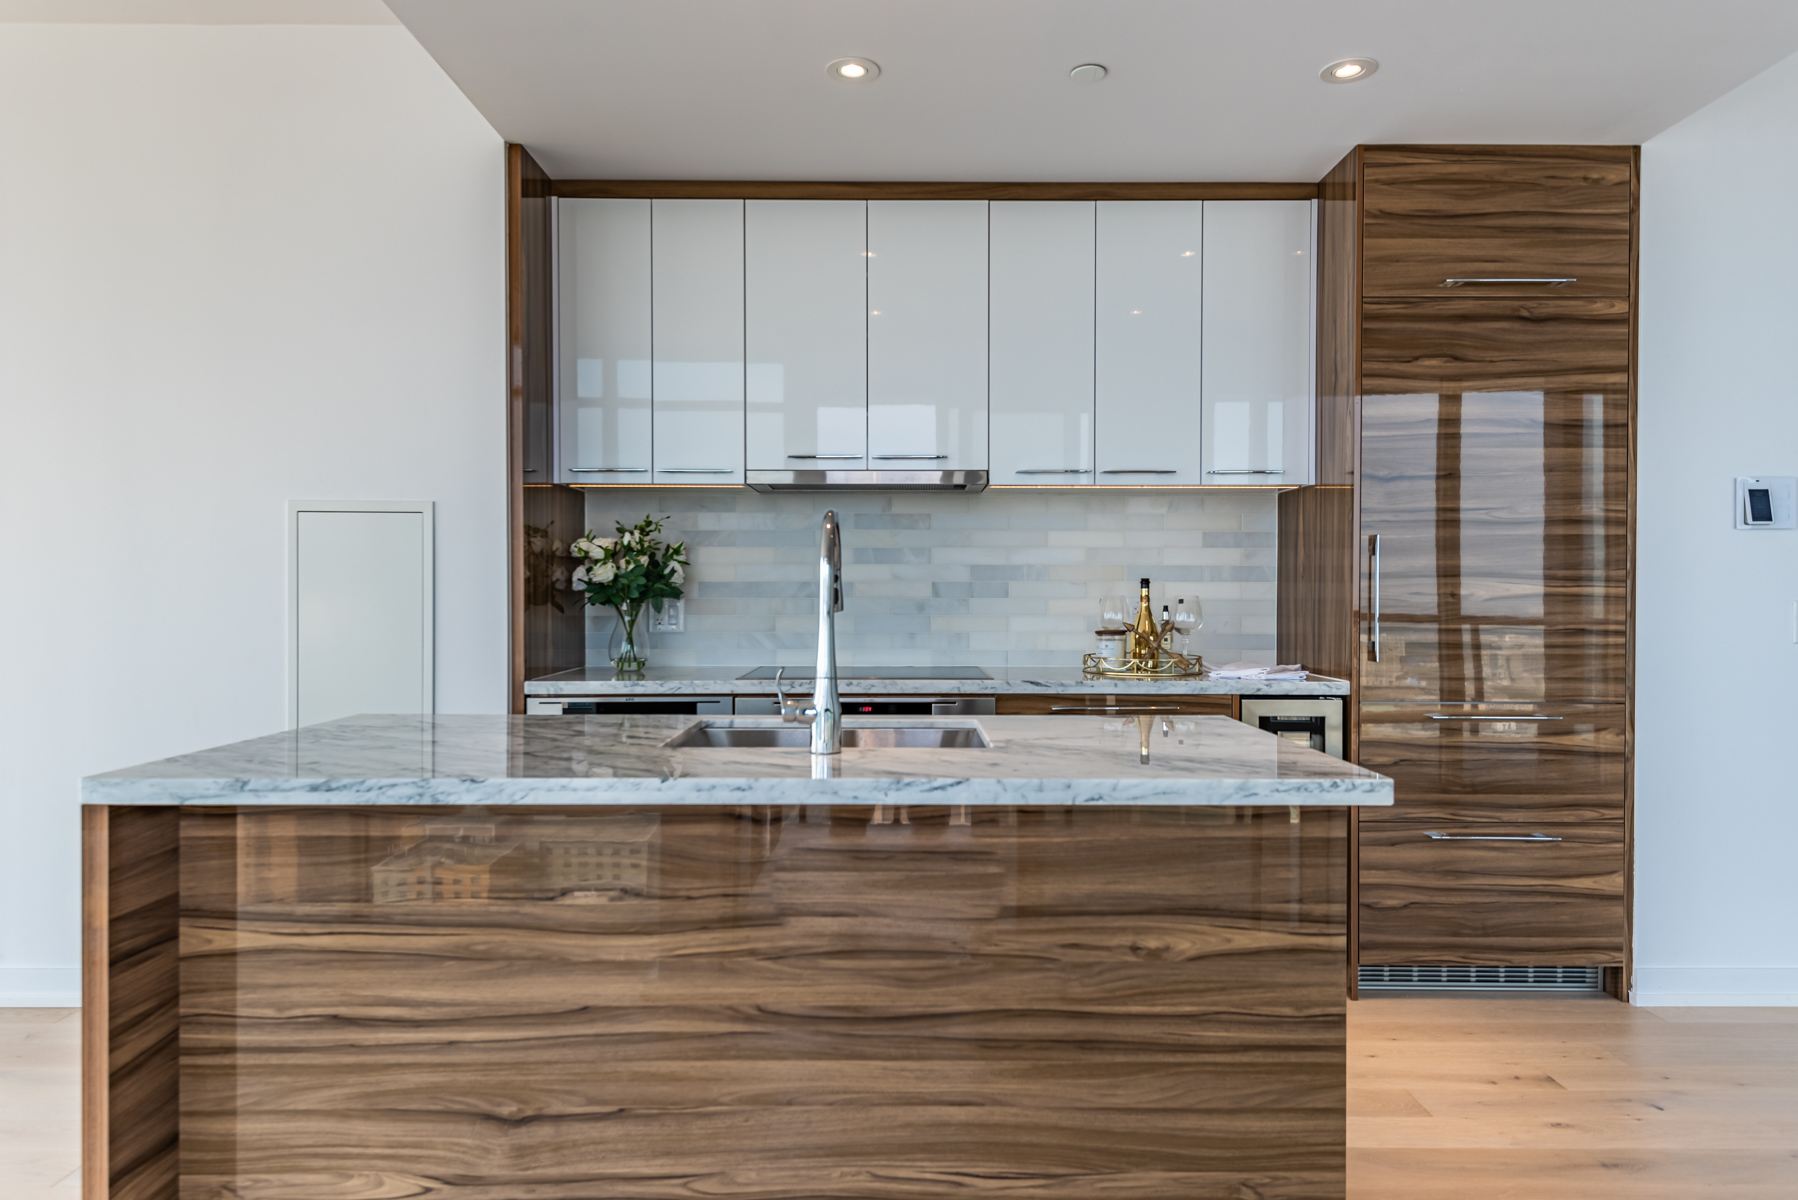 488 University Ave kitchen with gleaming cabinets, drawers and kitchen island.